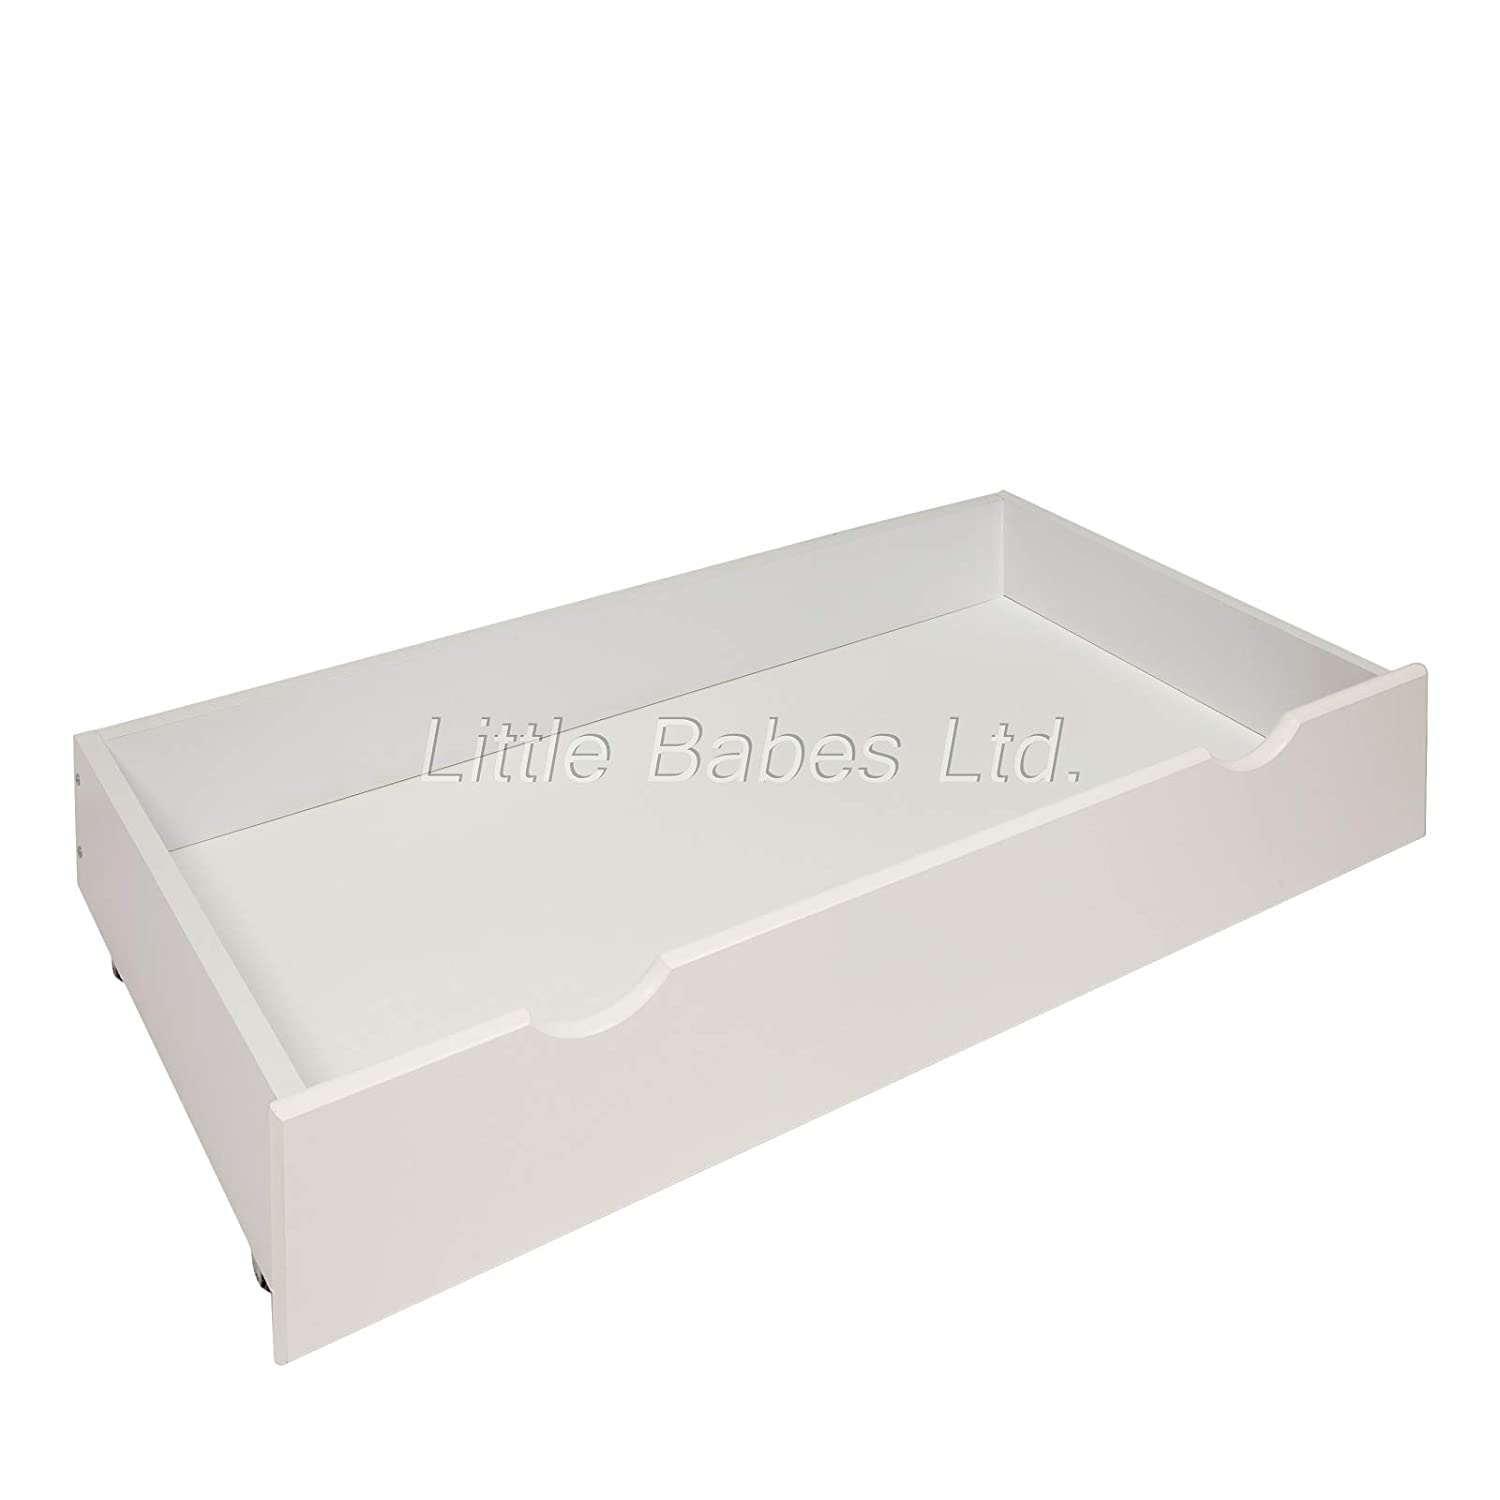 New White Under Bed Cot Drawer//Small Drawer Ideal for Mini Cot Space Saver Cot//Mini Under Bed Drawer for Baby Small Cot